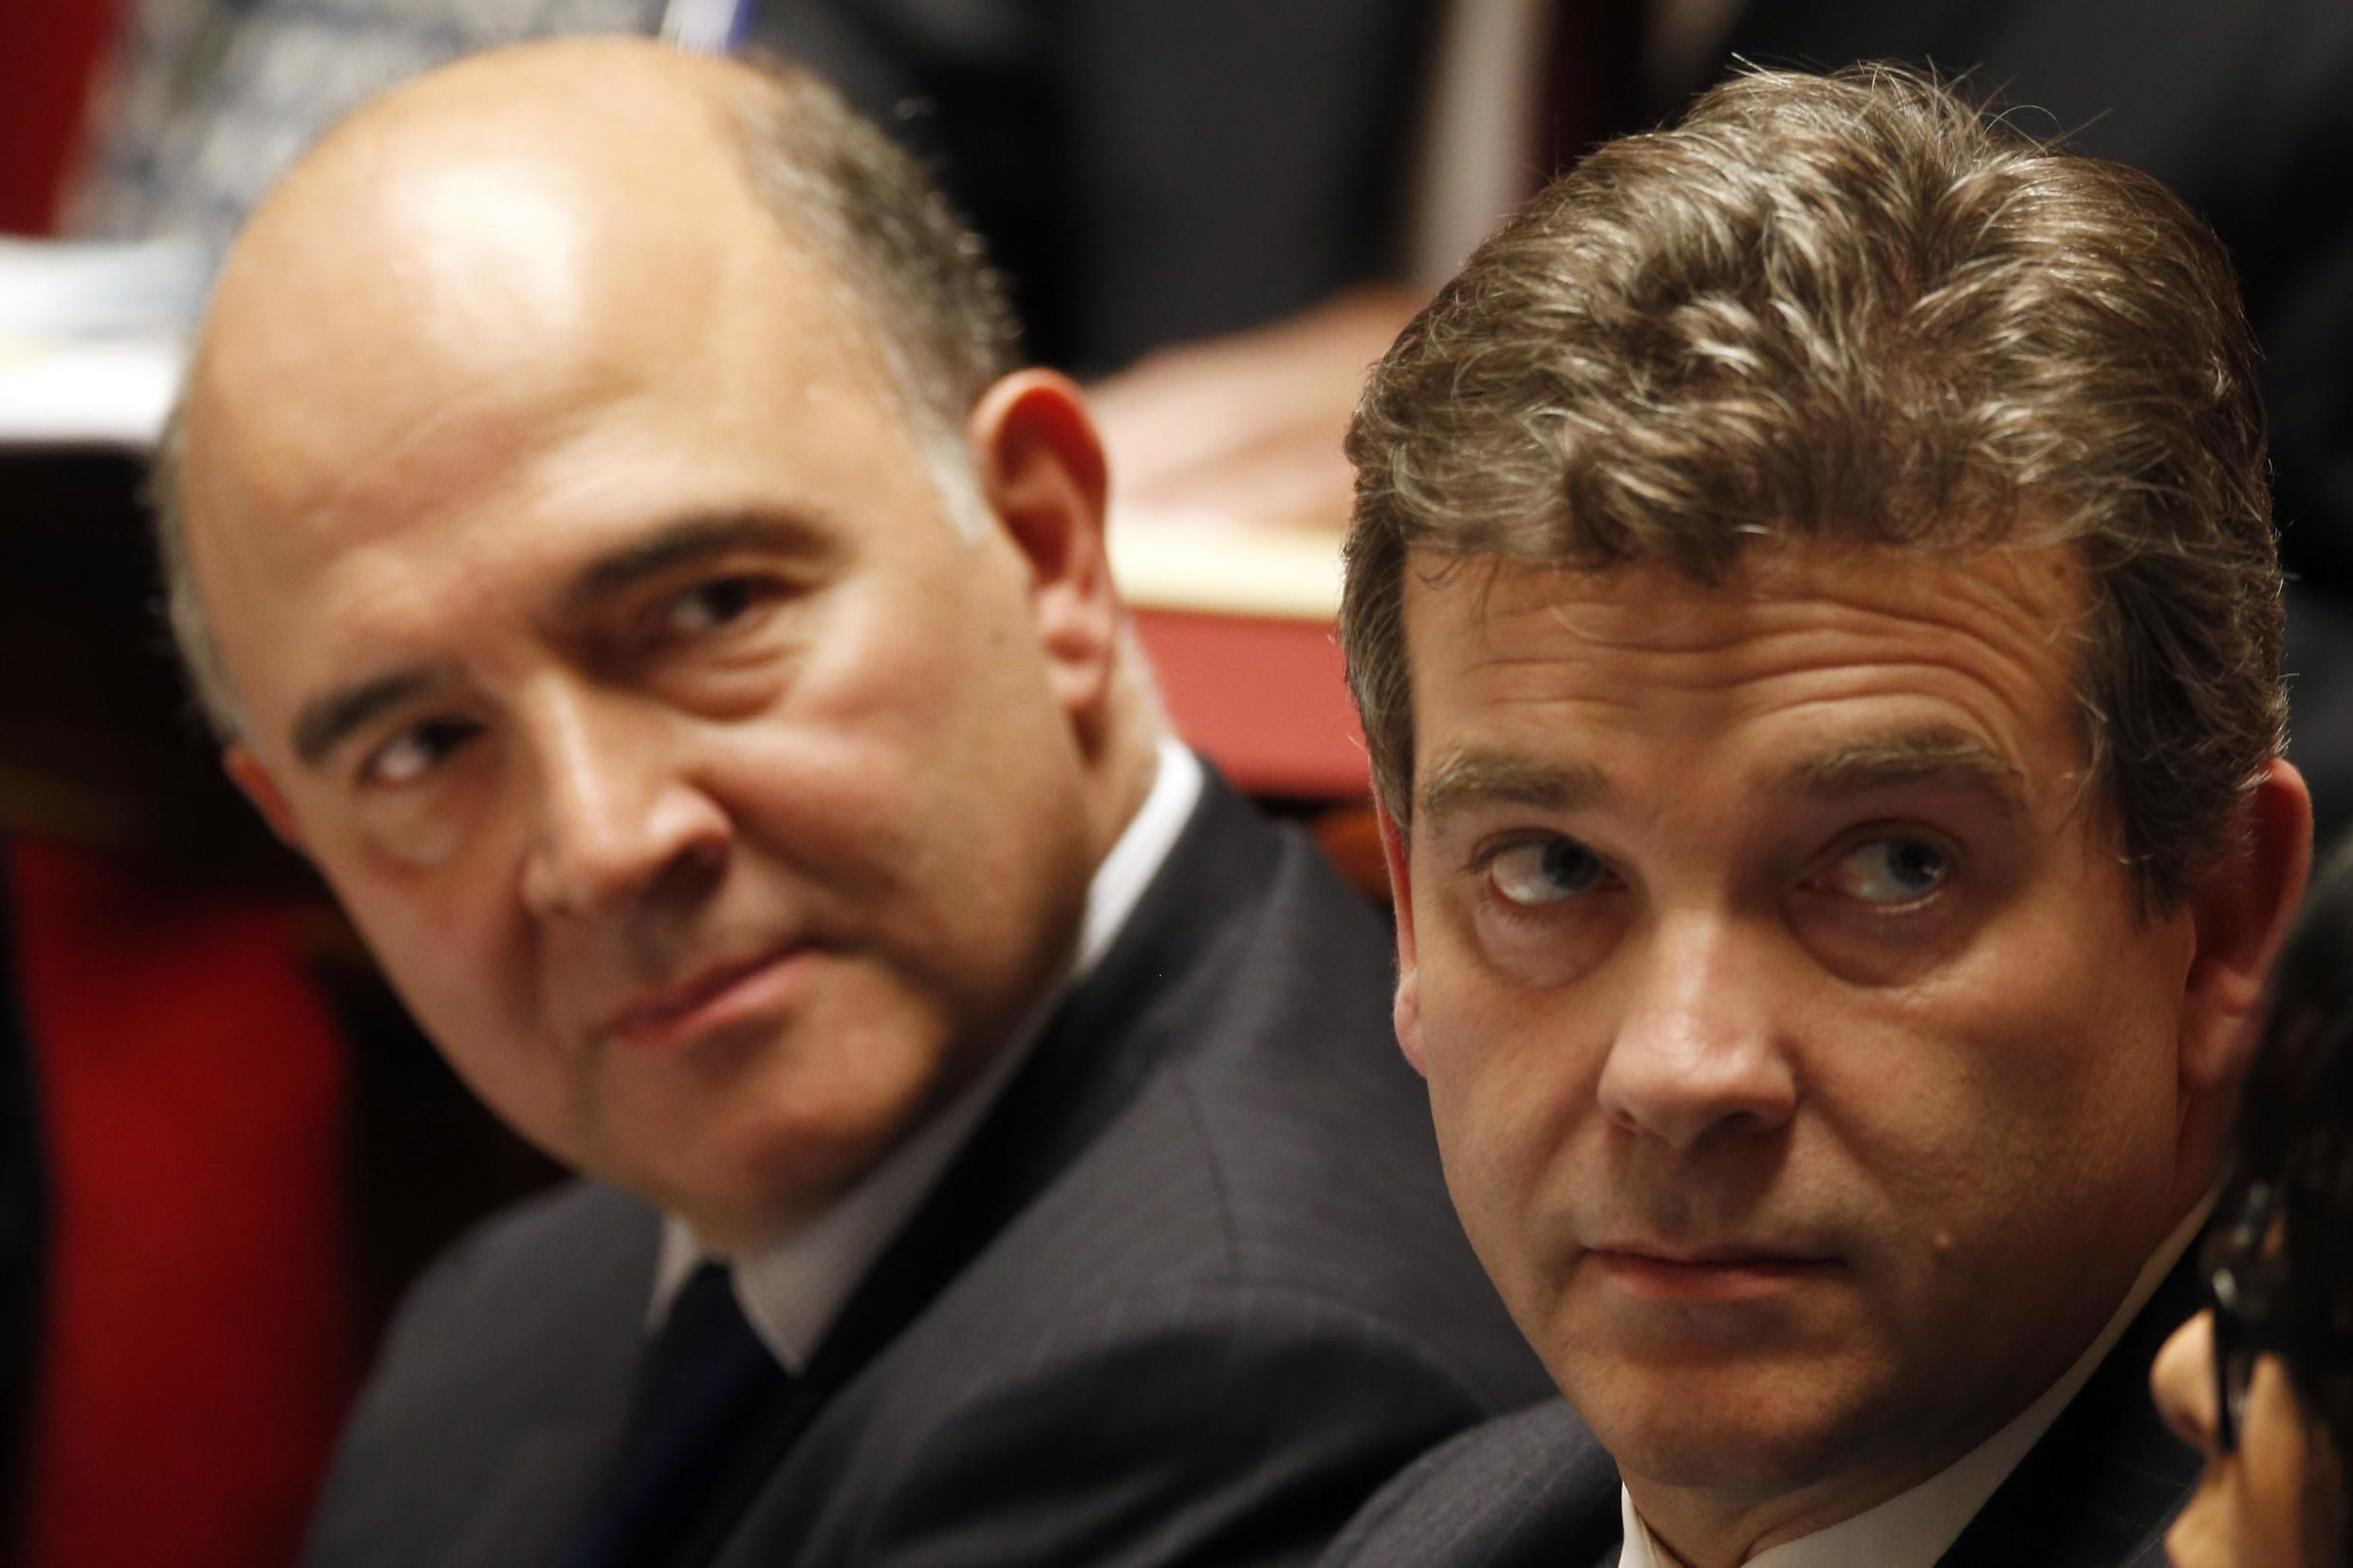 Pierre Moscovici (L) and Arnaud Montebourg (R)